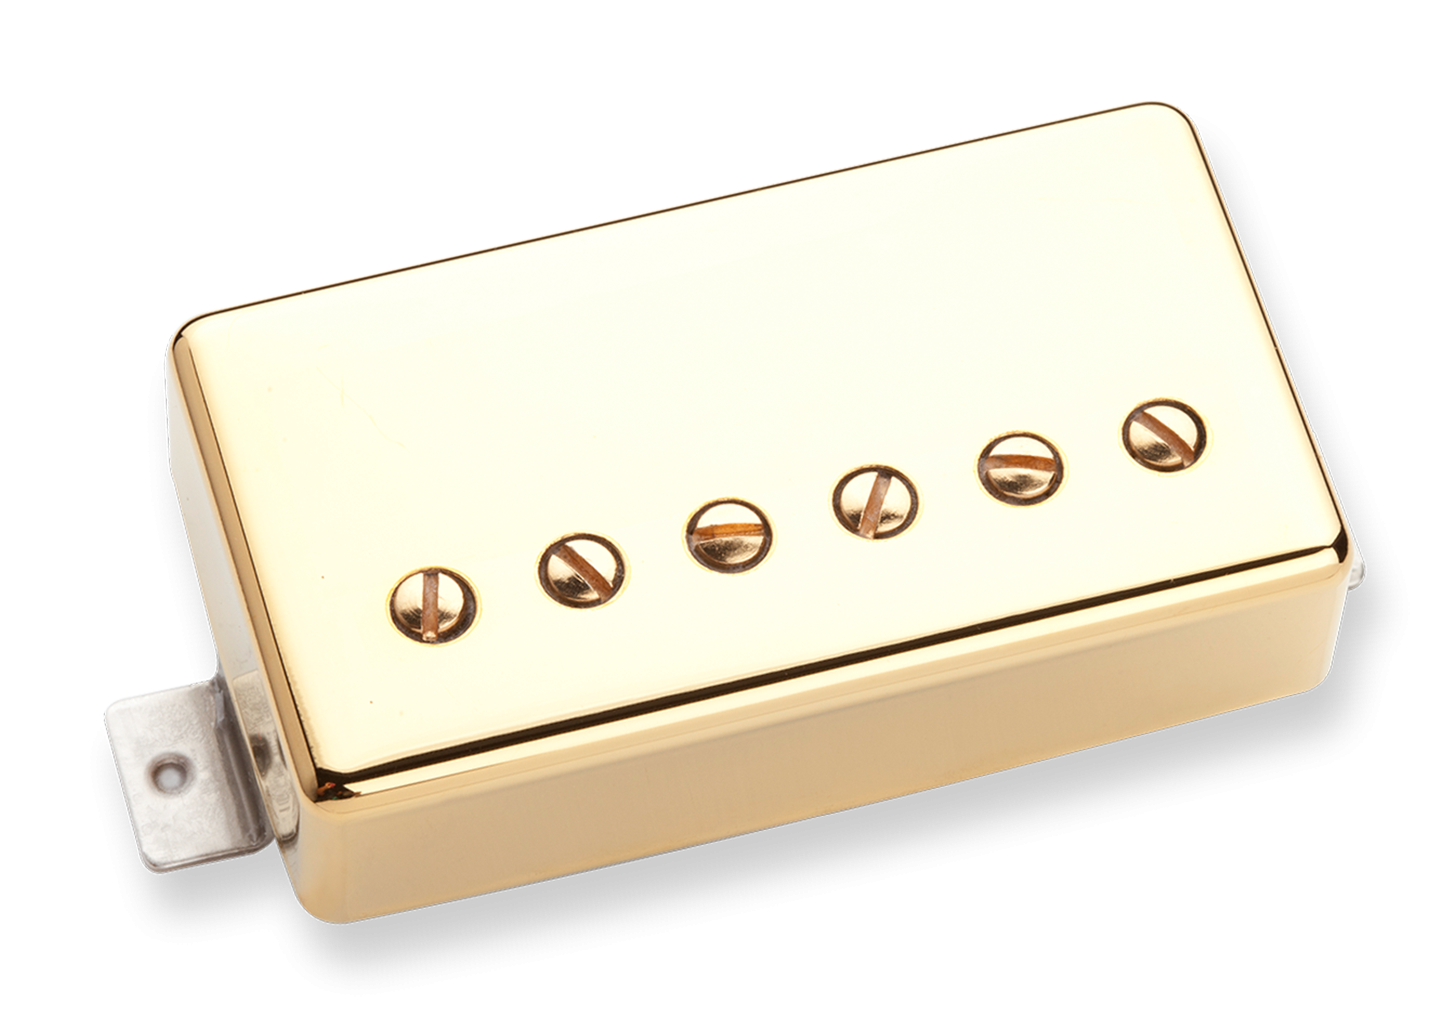 Seymour Duncan Whole Lotta Humbucker - SH-18B Bridge Gold